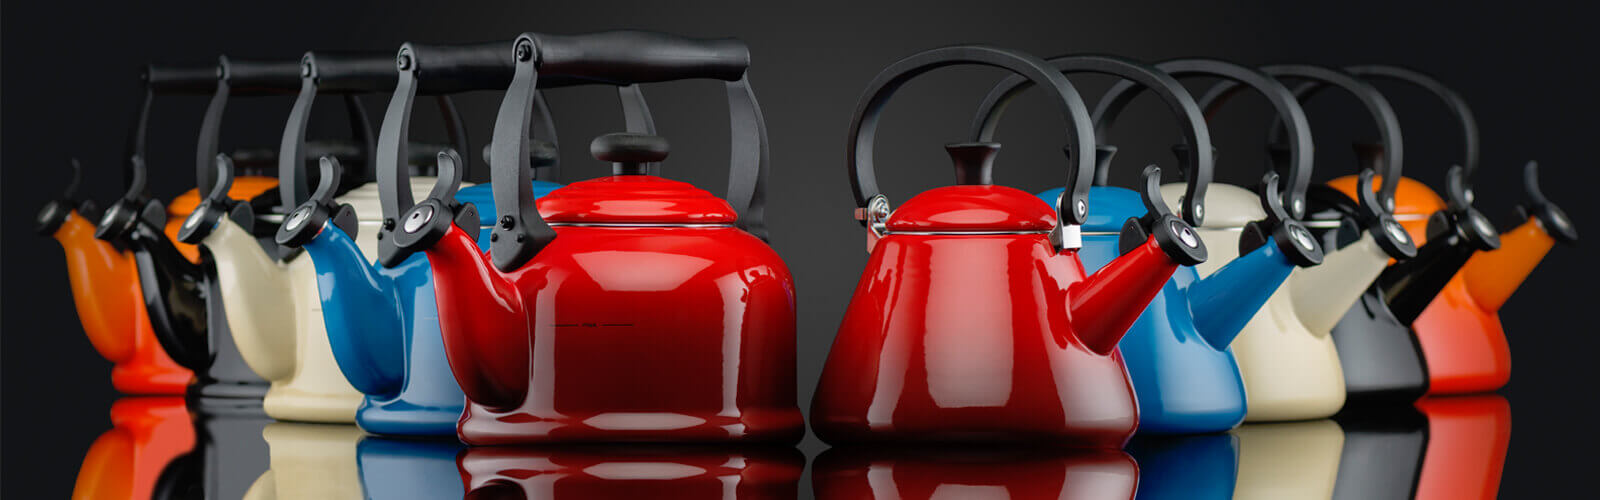 Electric Kettle Buying Guide 2